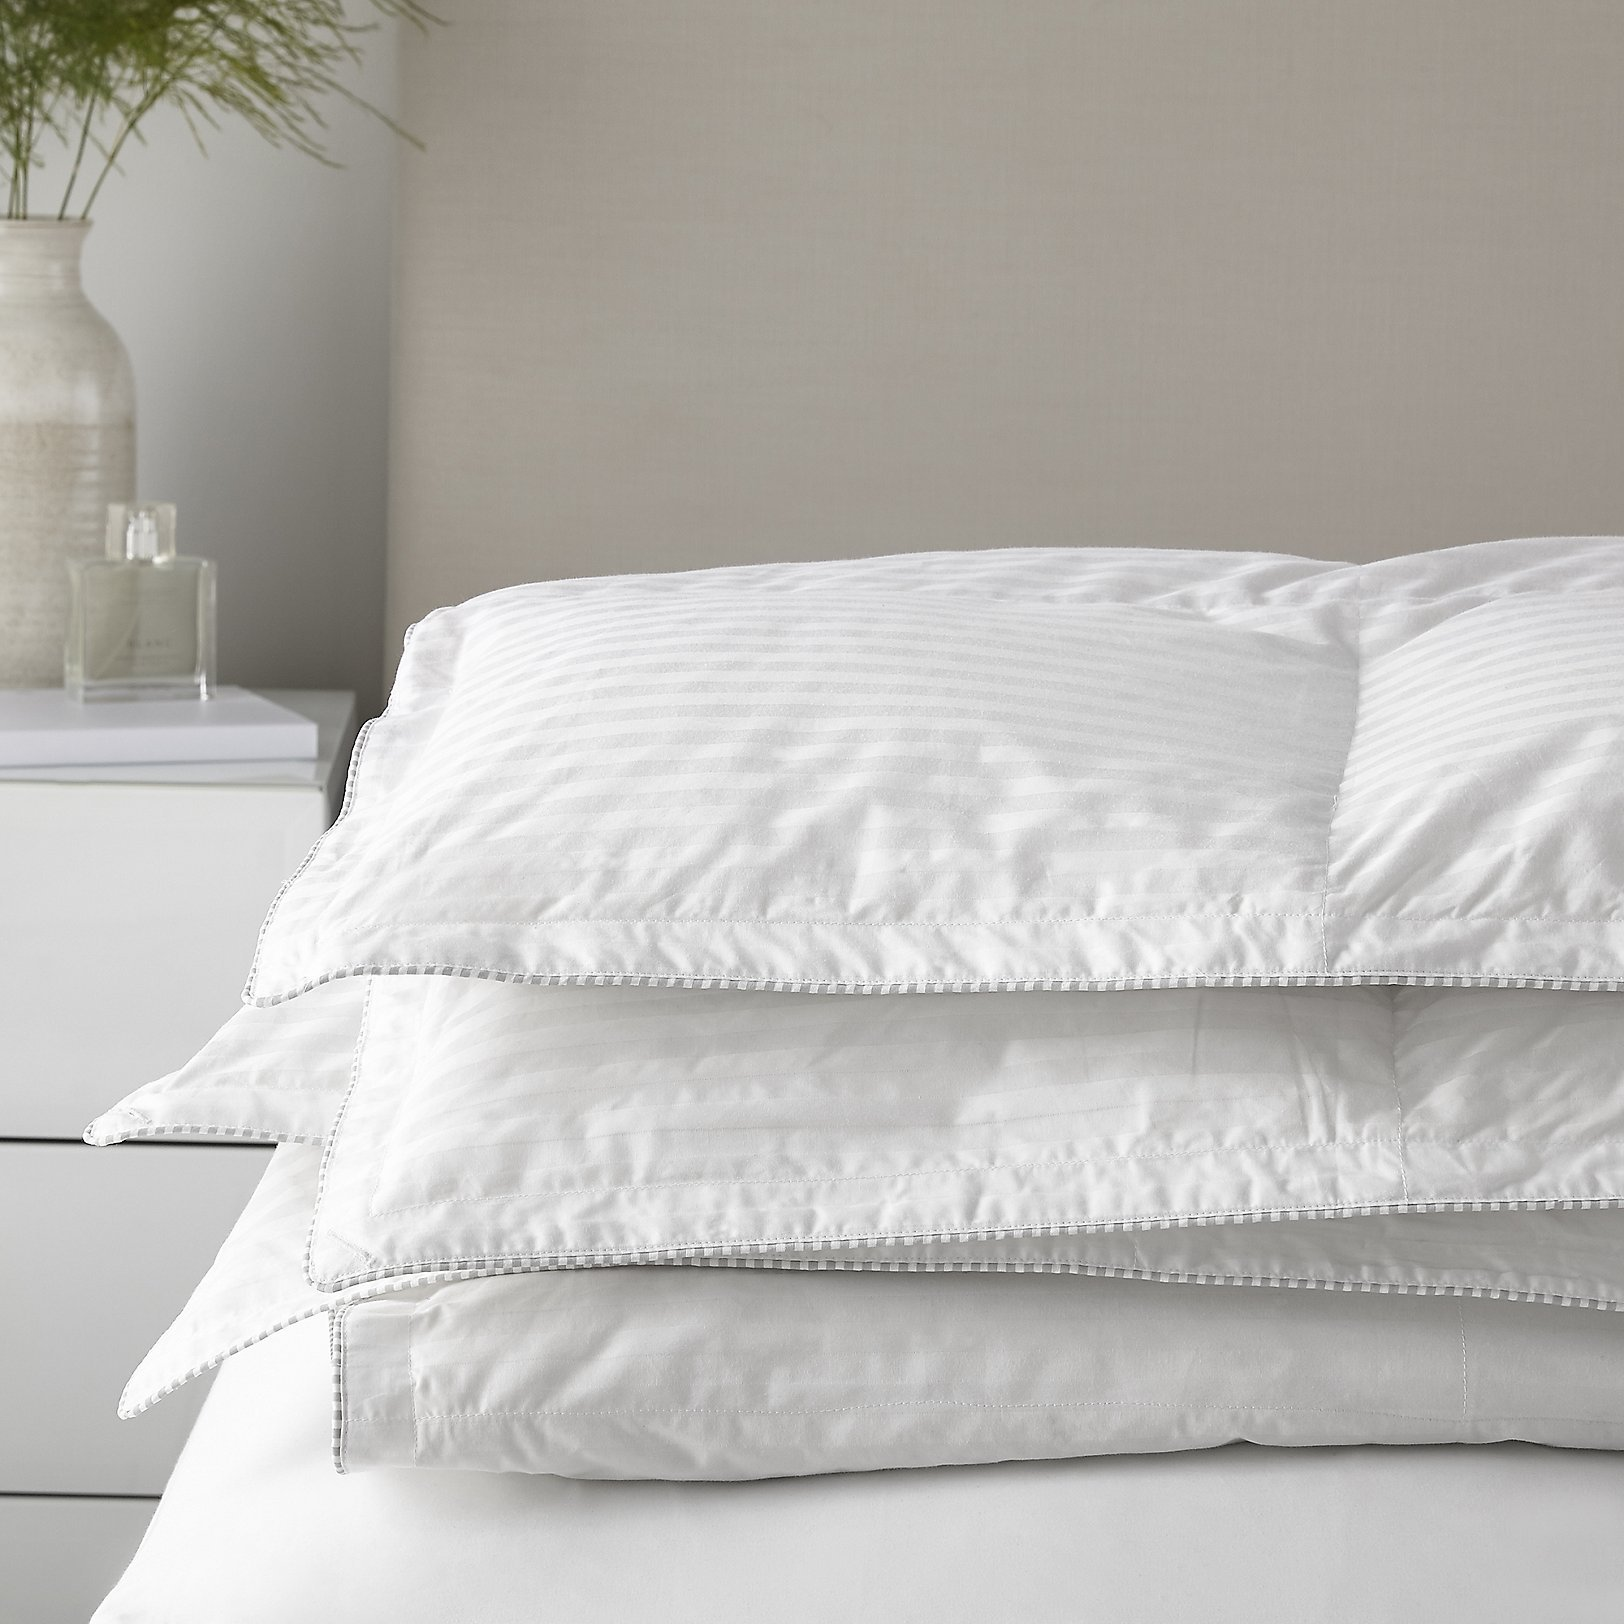 What Does It Cost To Dry Clean A Feather Comforter